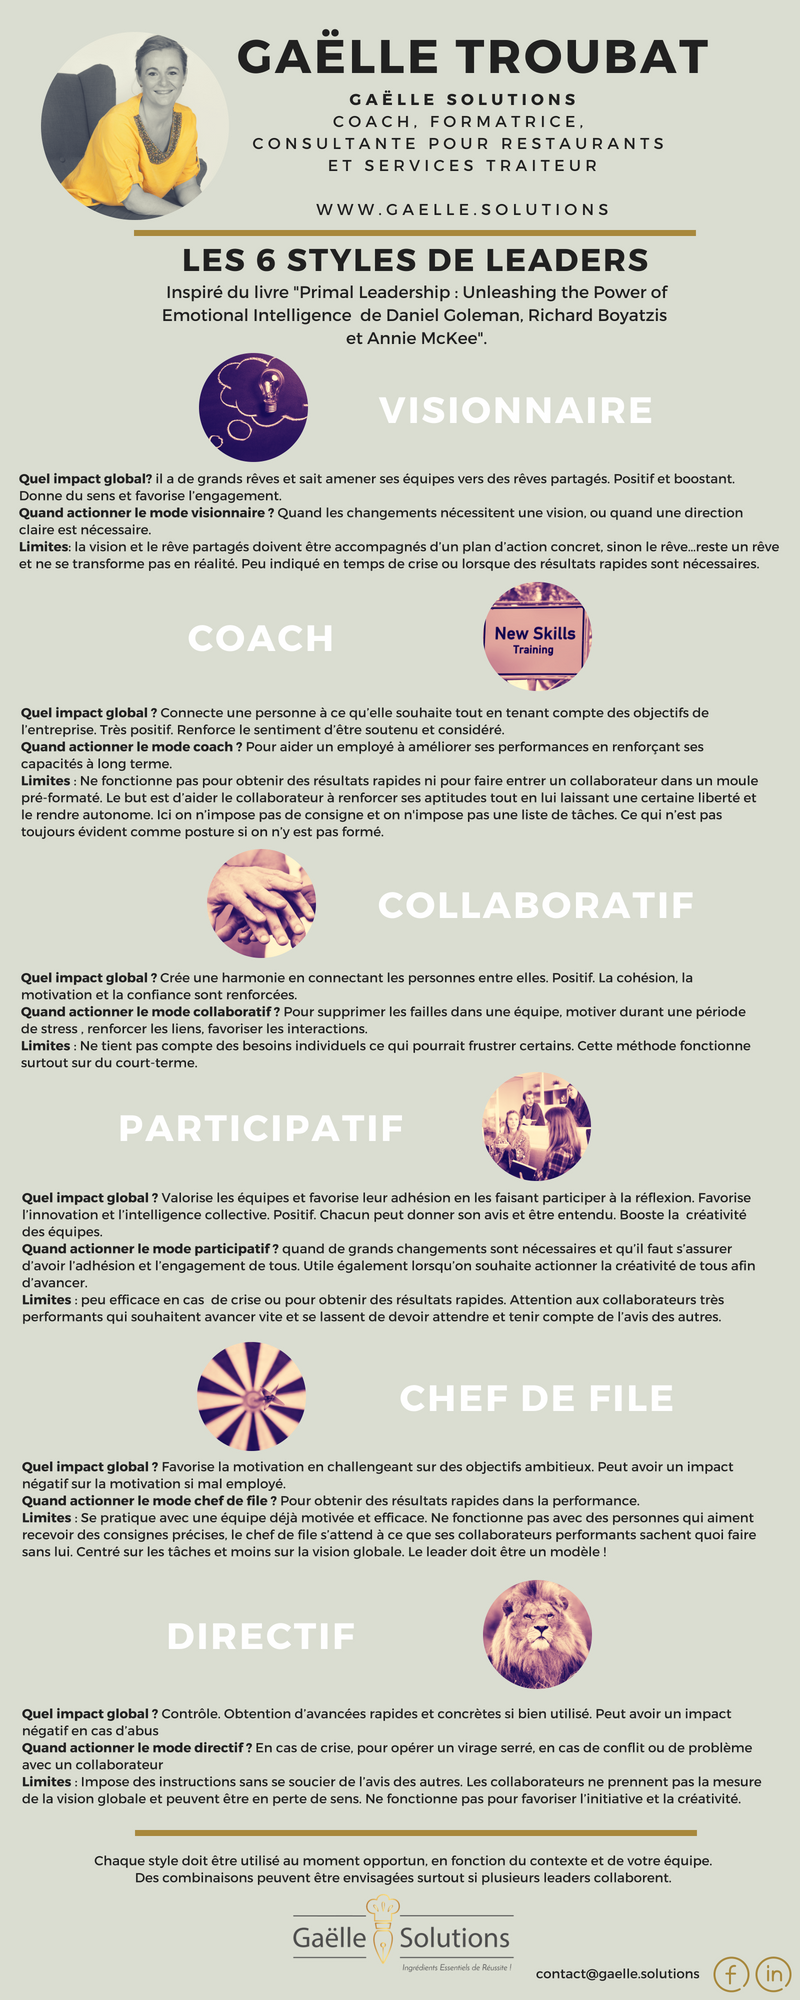 Gaëlle Troubat - Gaëlle Solutions - infographie 6 styles de leaders